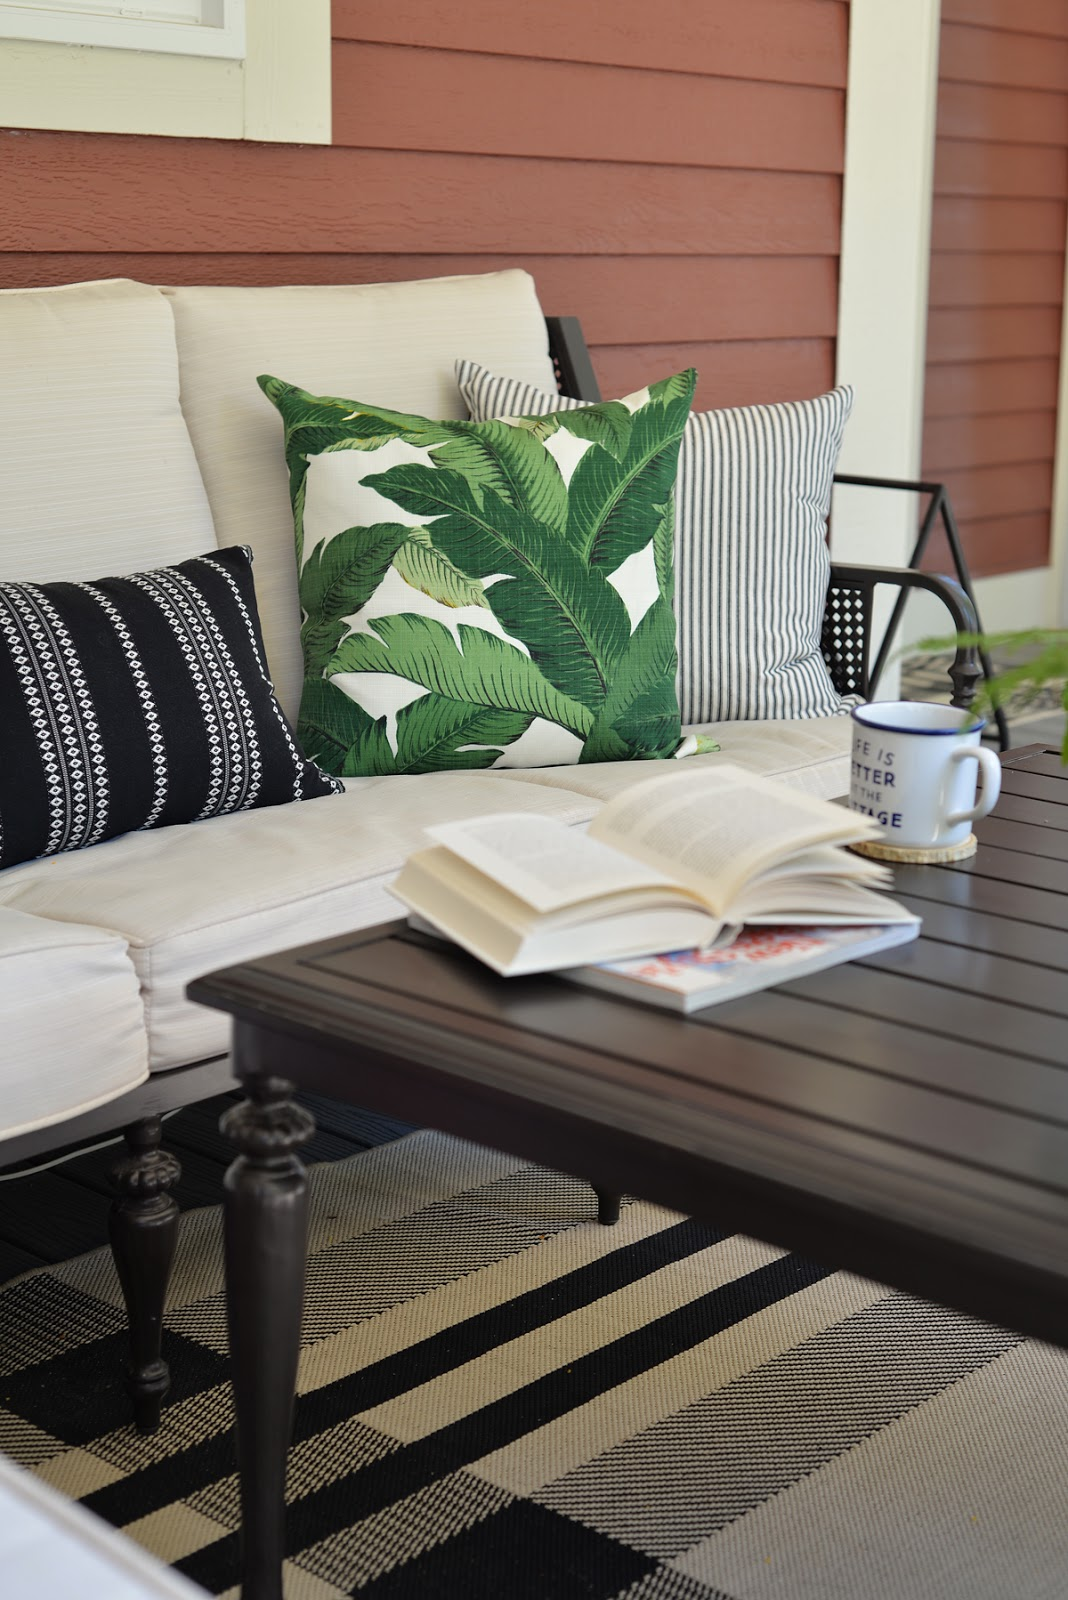 RamblingRenovators.ca | porch decor | British Colonial outdoor furniture, ticking stripe, palm leaves